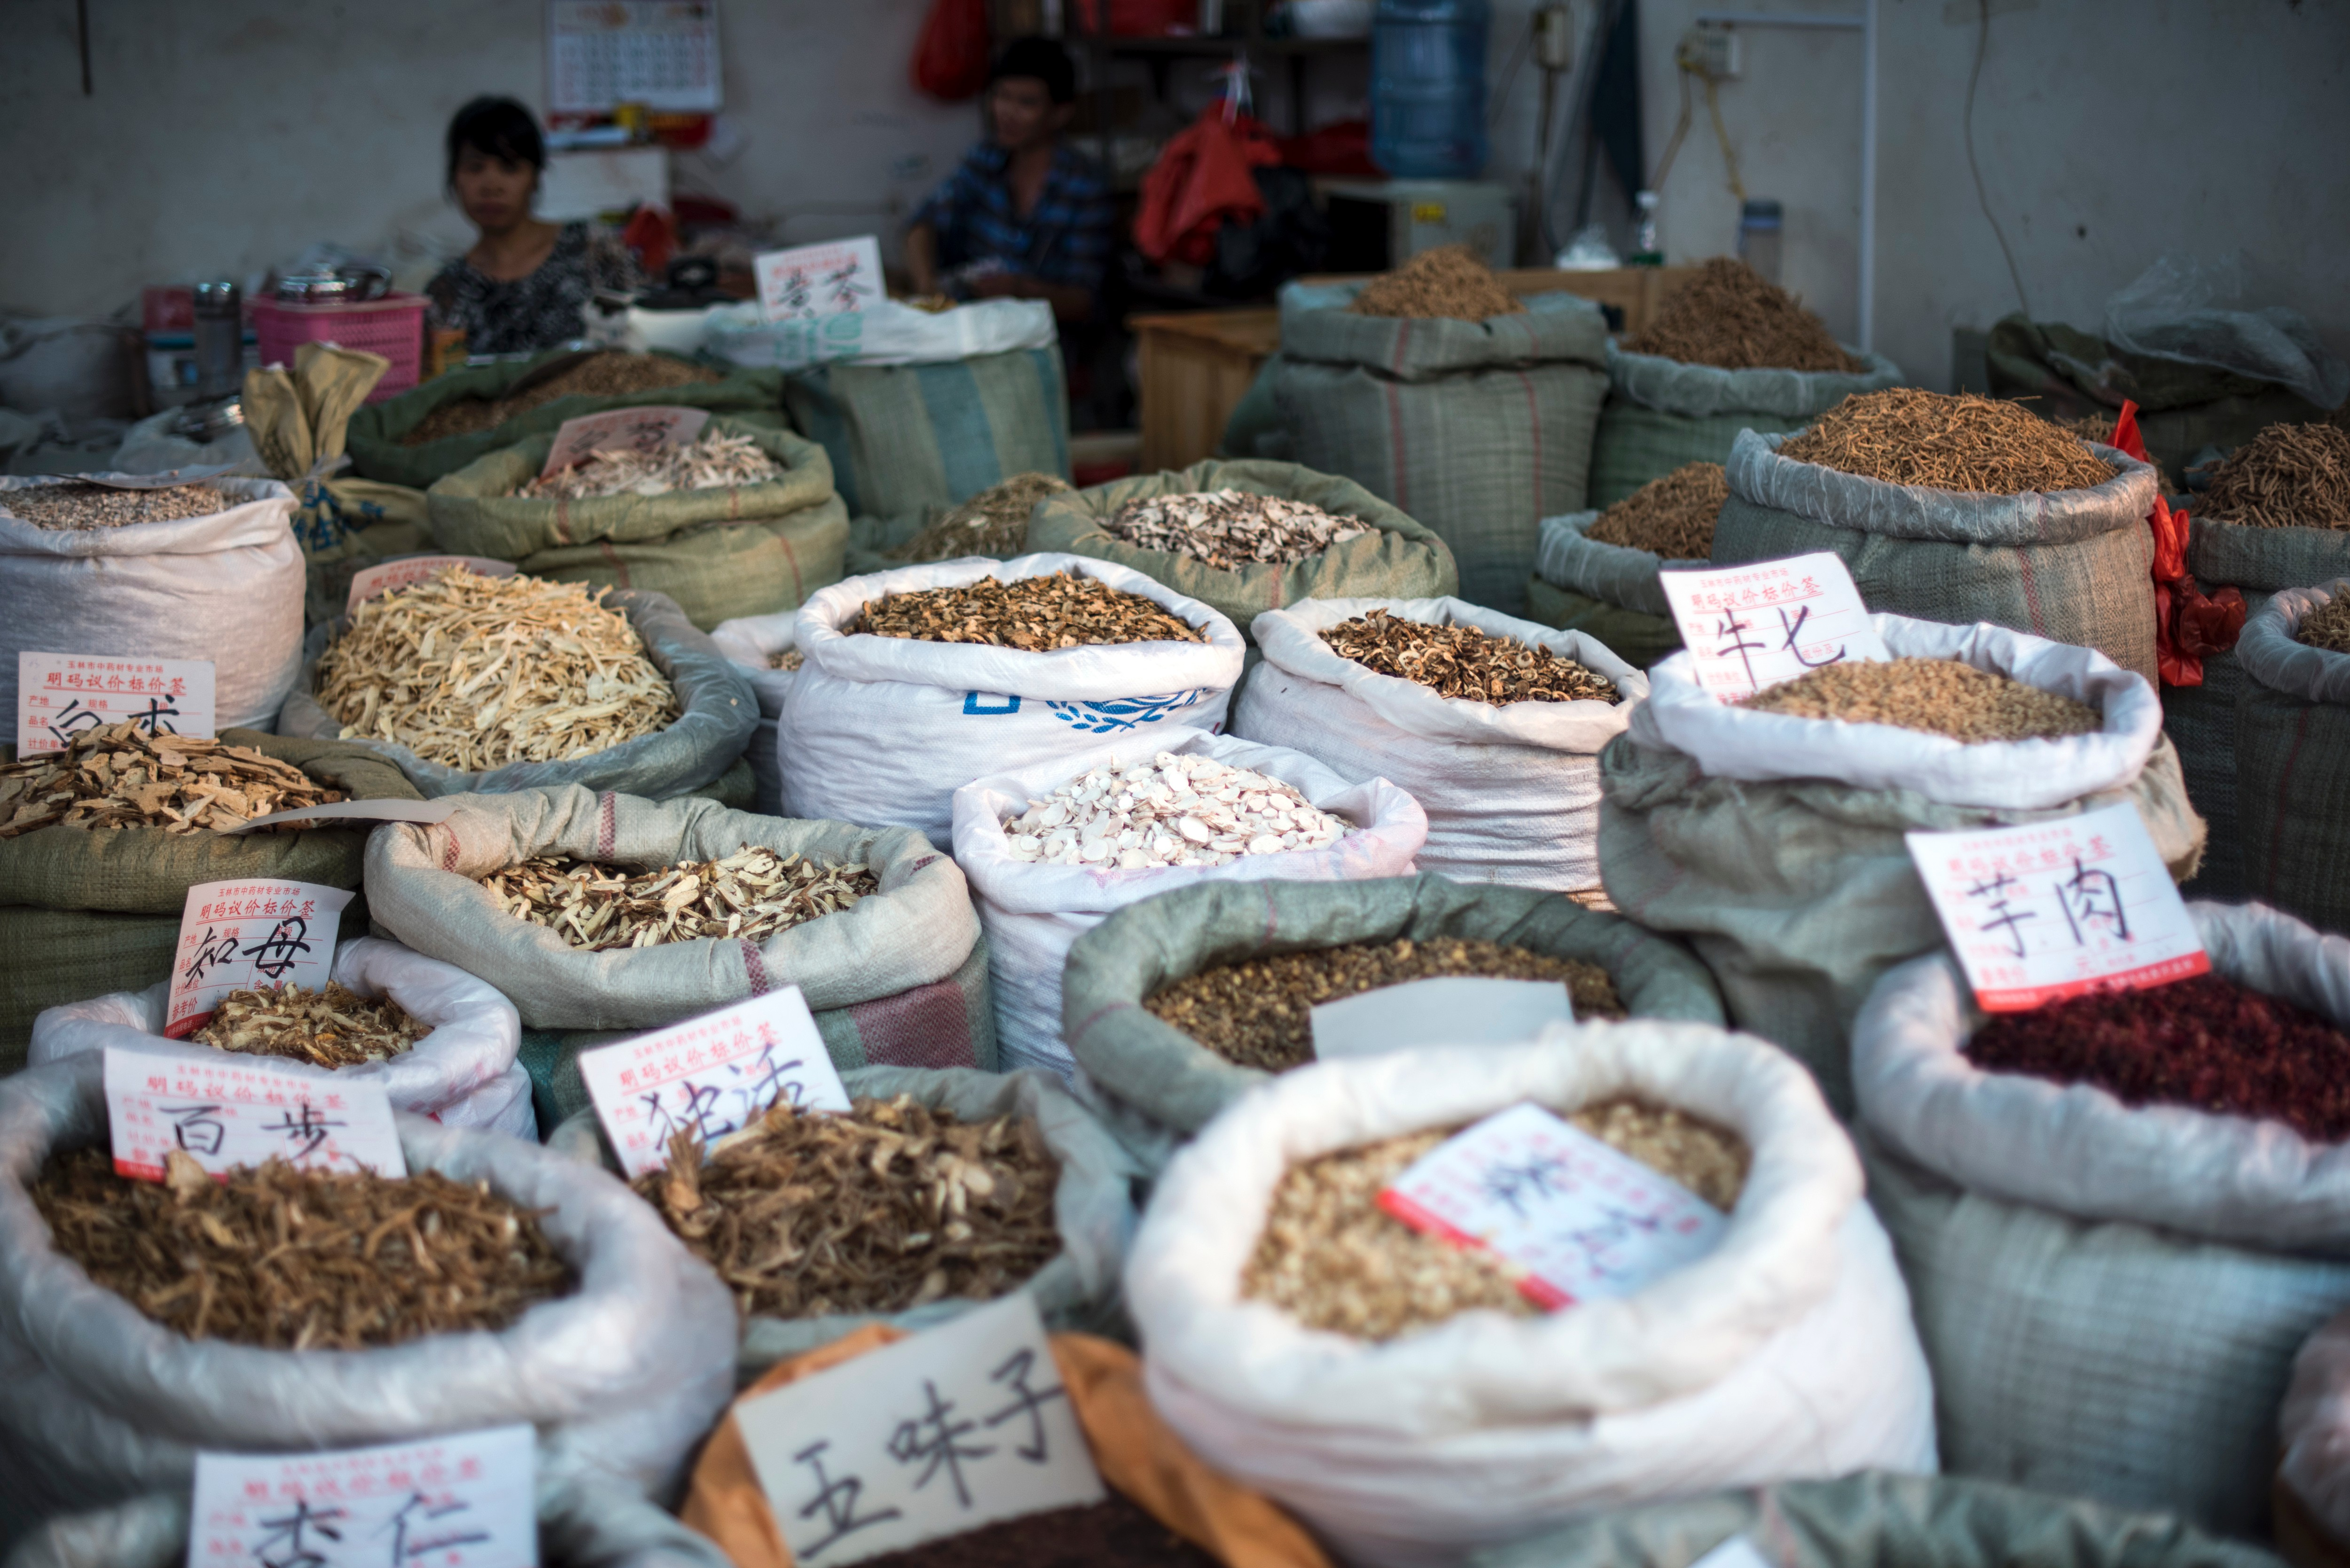 Asian herb cancer are not